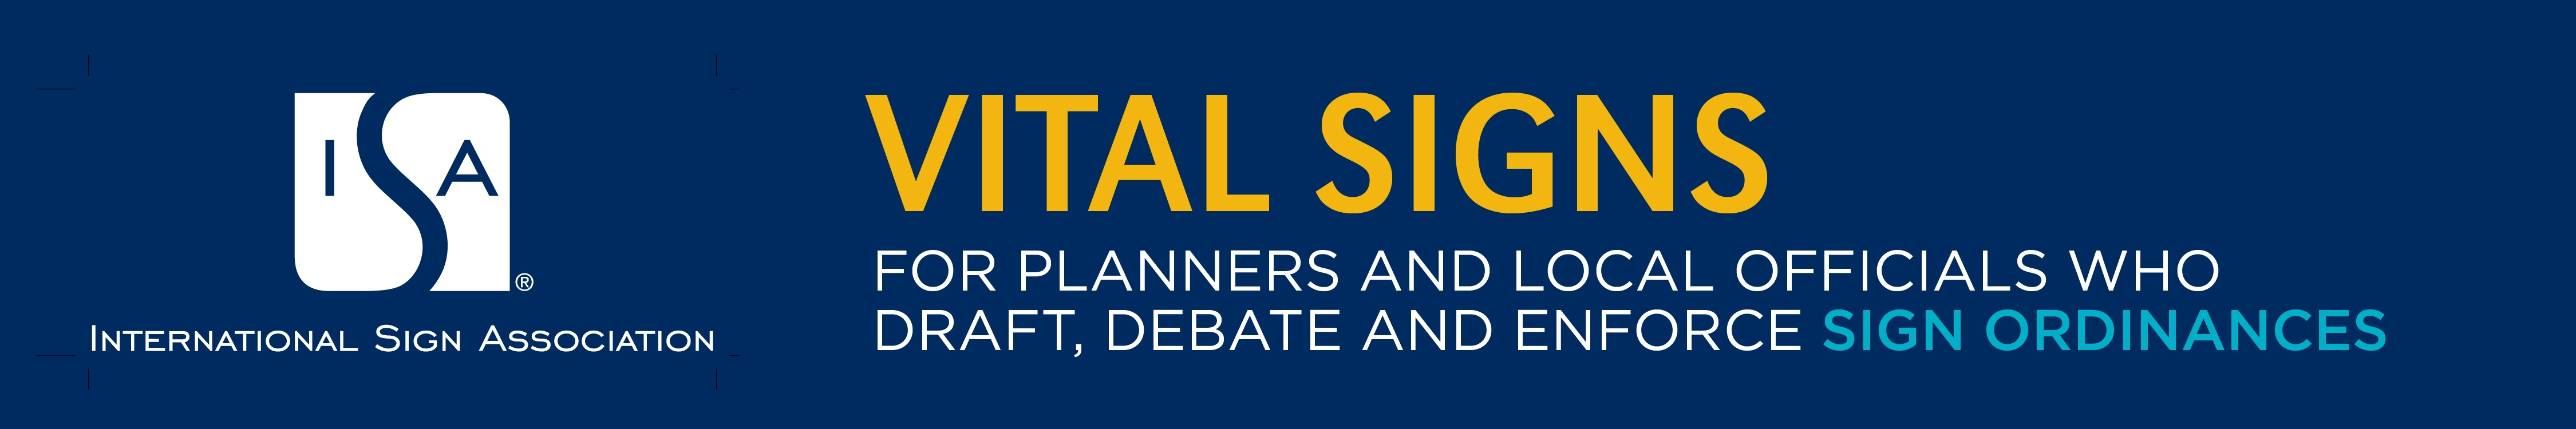 Vital Signs: For planners and local officials who draft, debate and enforce sign ordinances